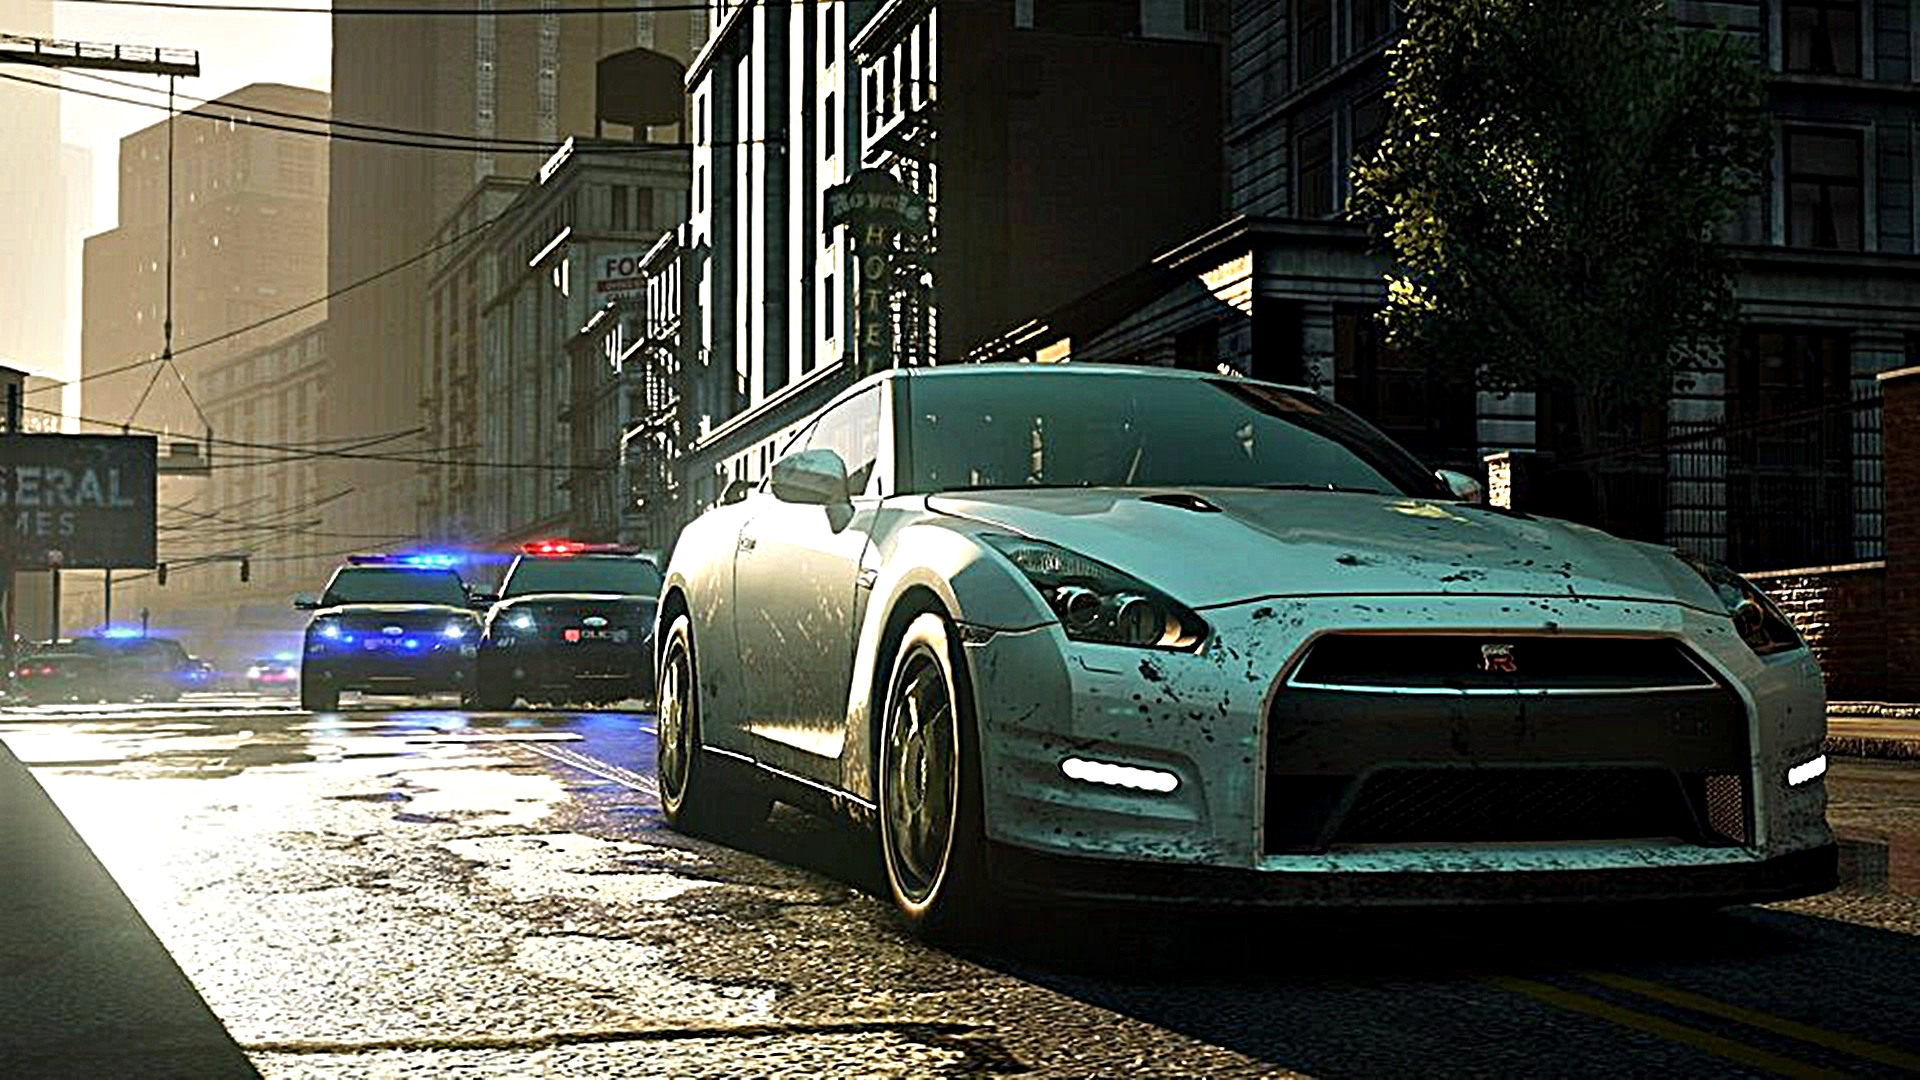 Nissan Gtr Car Hd Wallpapers Fondos Gamer Para El Escritorio Hd Parte 2 Im 225 Genes